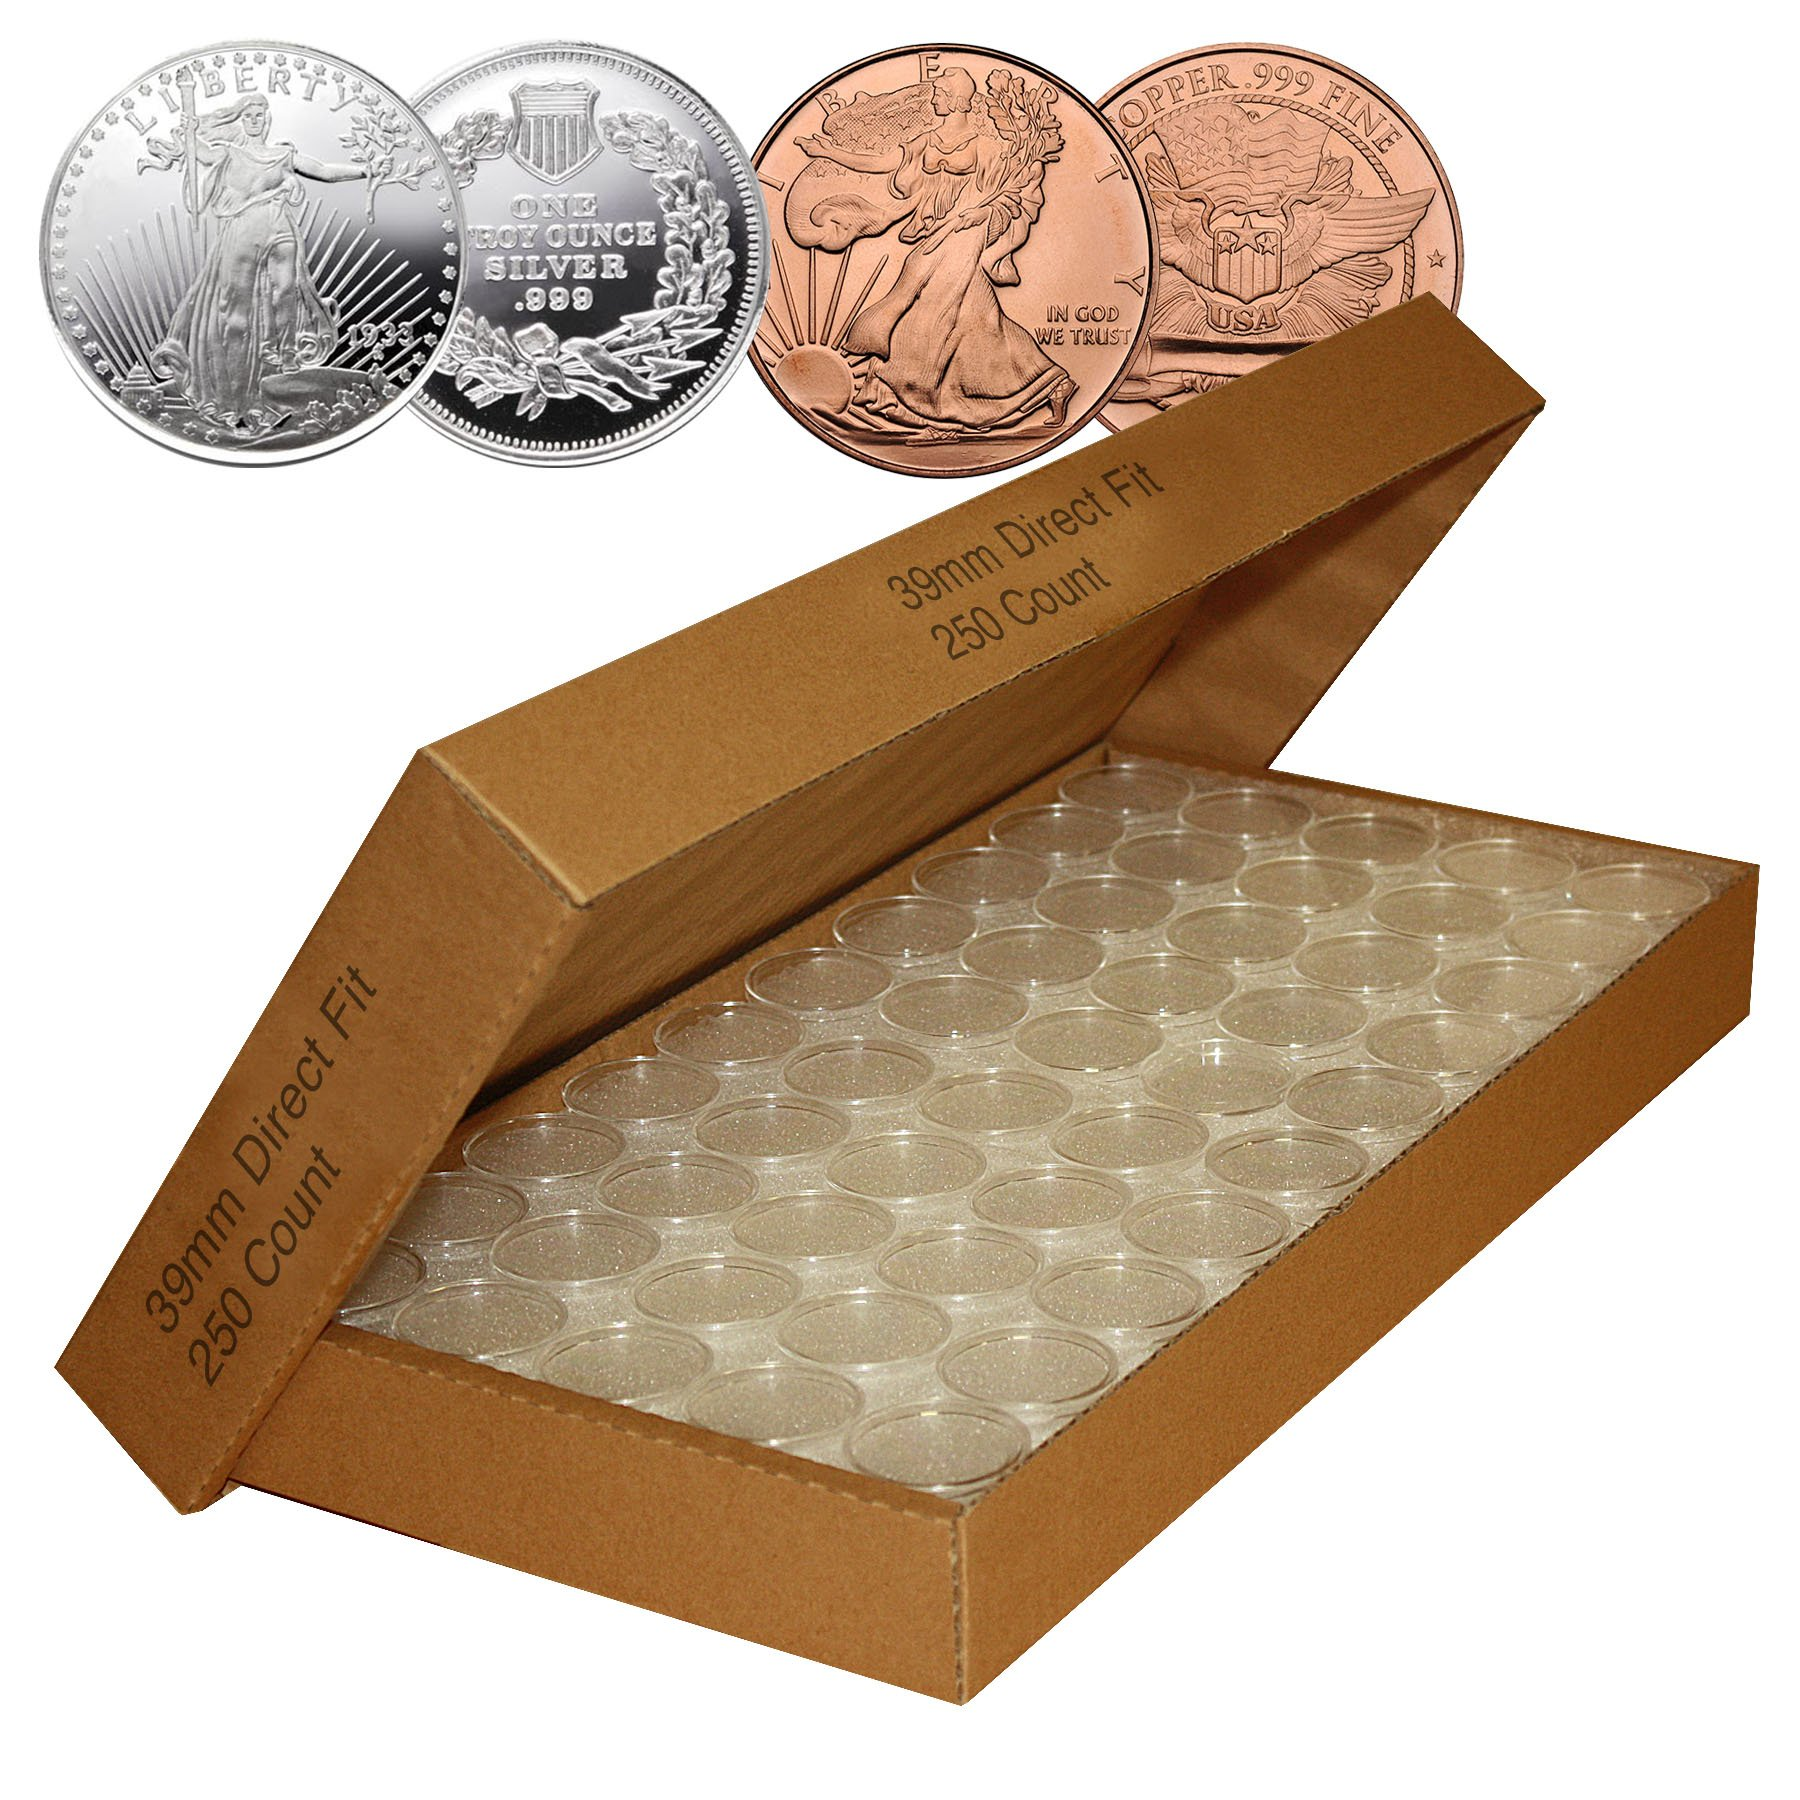 250 Direct Fit Airtight 39mm Coin Holder Capsules For 1oz SILVER & COPPER ROUNDS by Merrick Mint